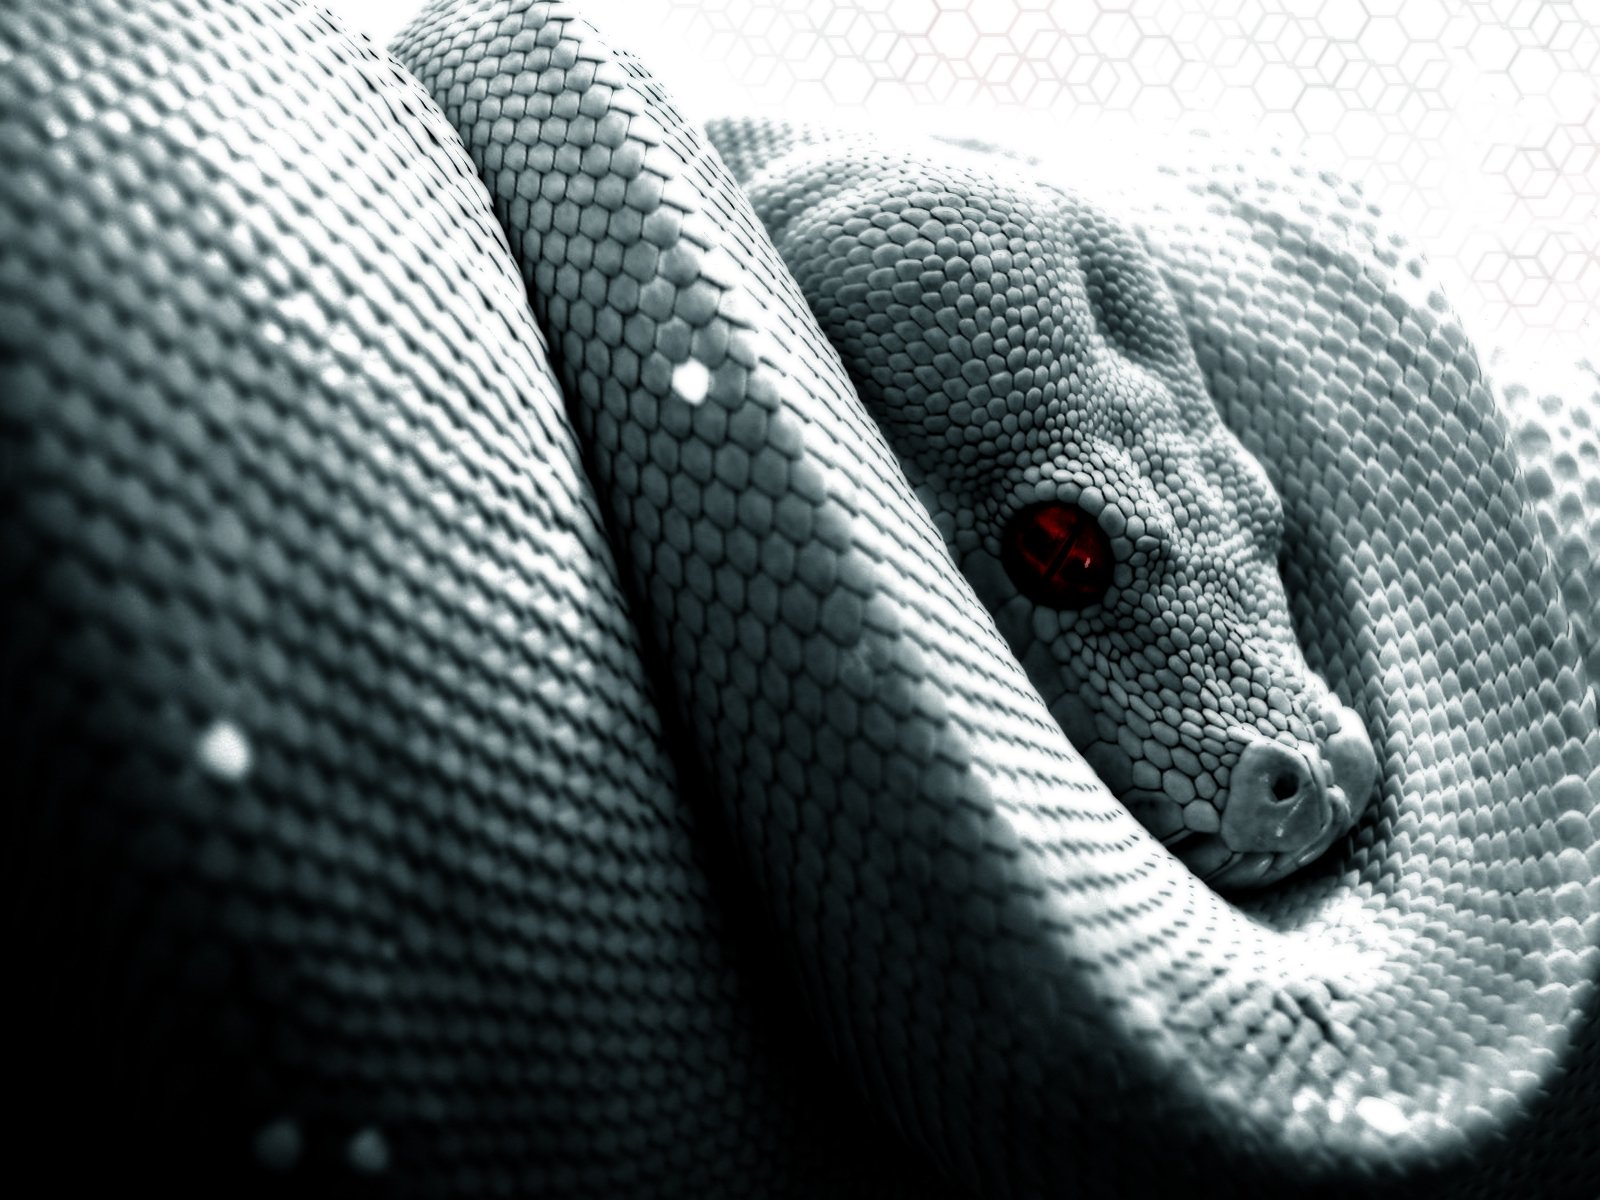 271 snake hd wallpapers background images wallpaper abyss hd wallpaper background image id26823 voltagebd